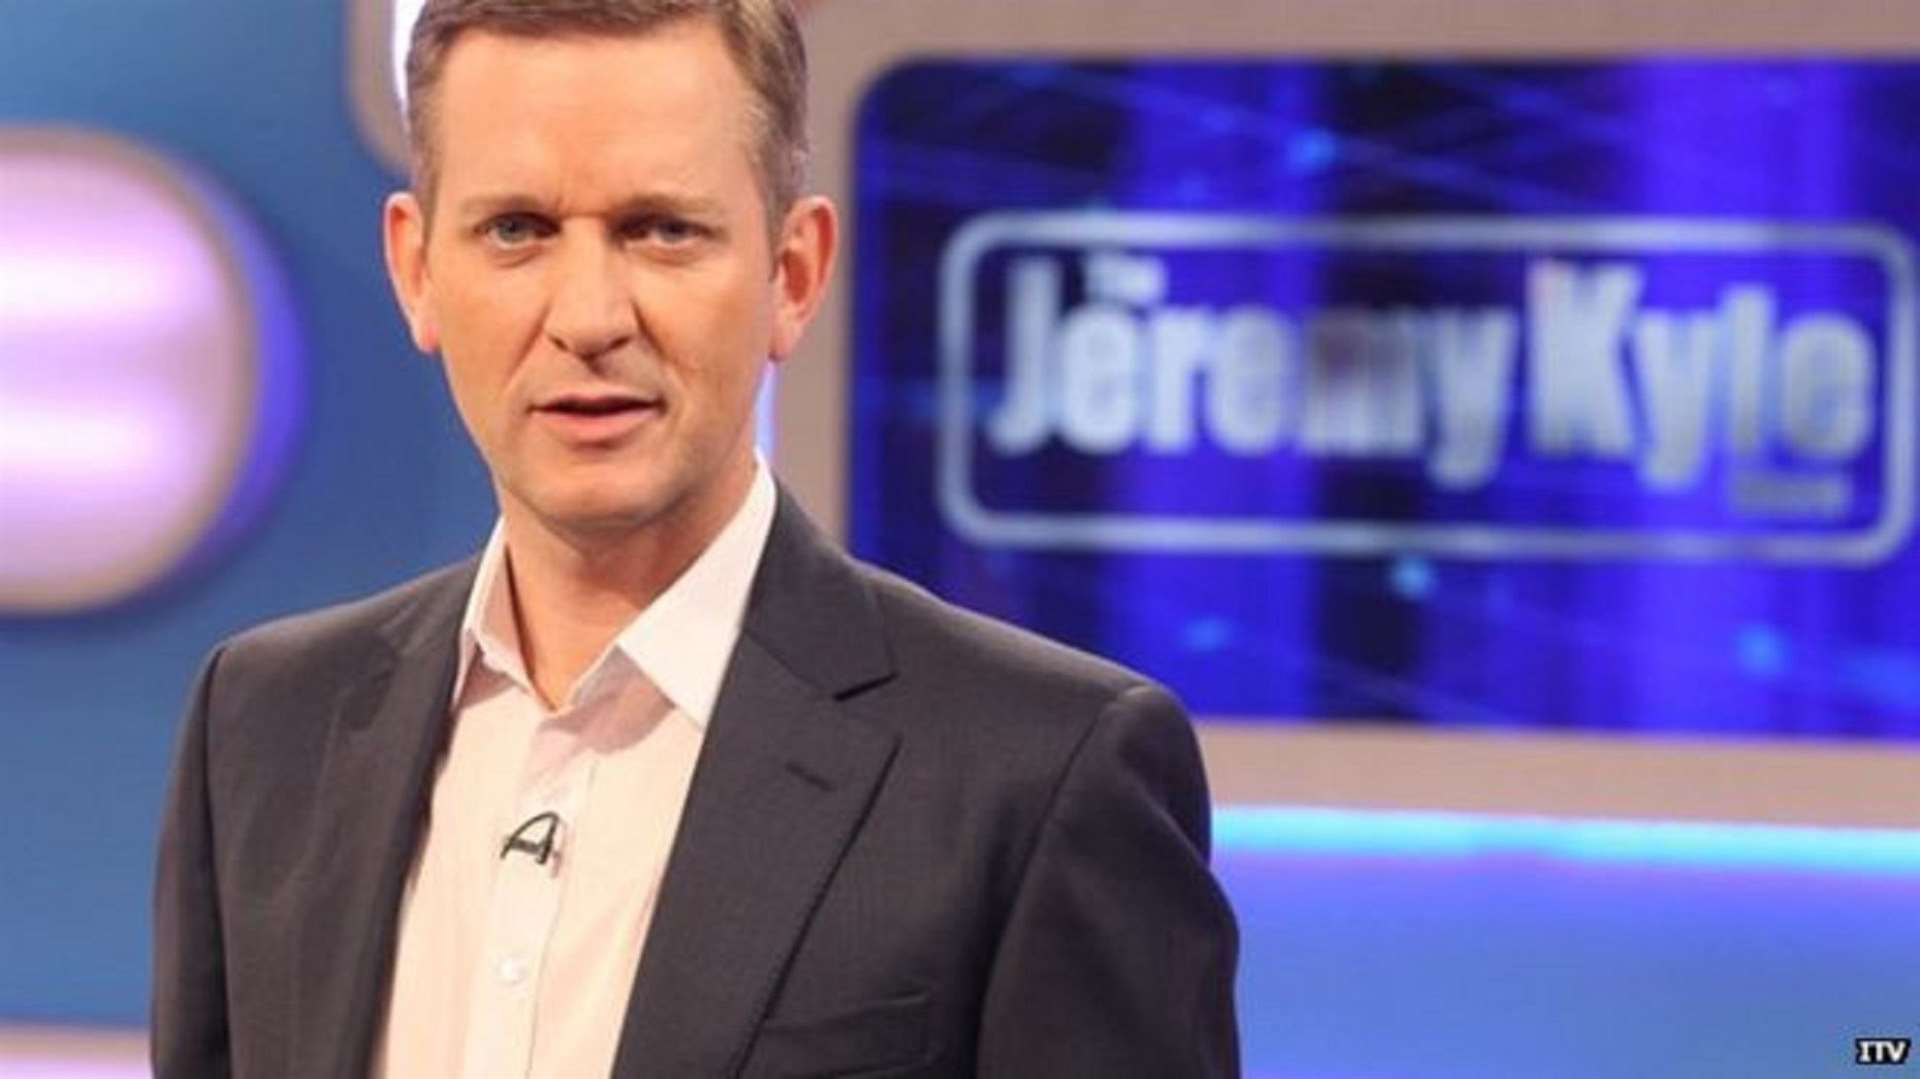 Jeremy Kyle's show was deleted in 2019